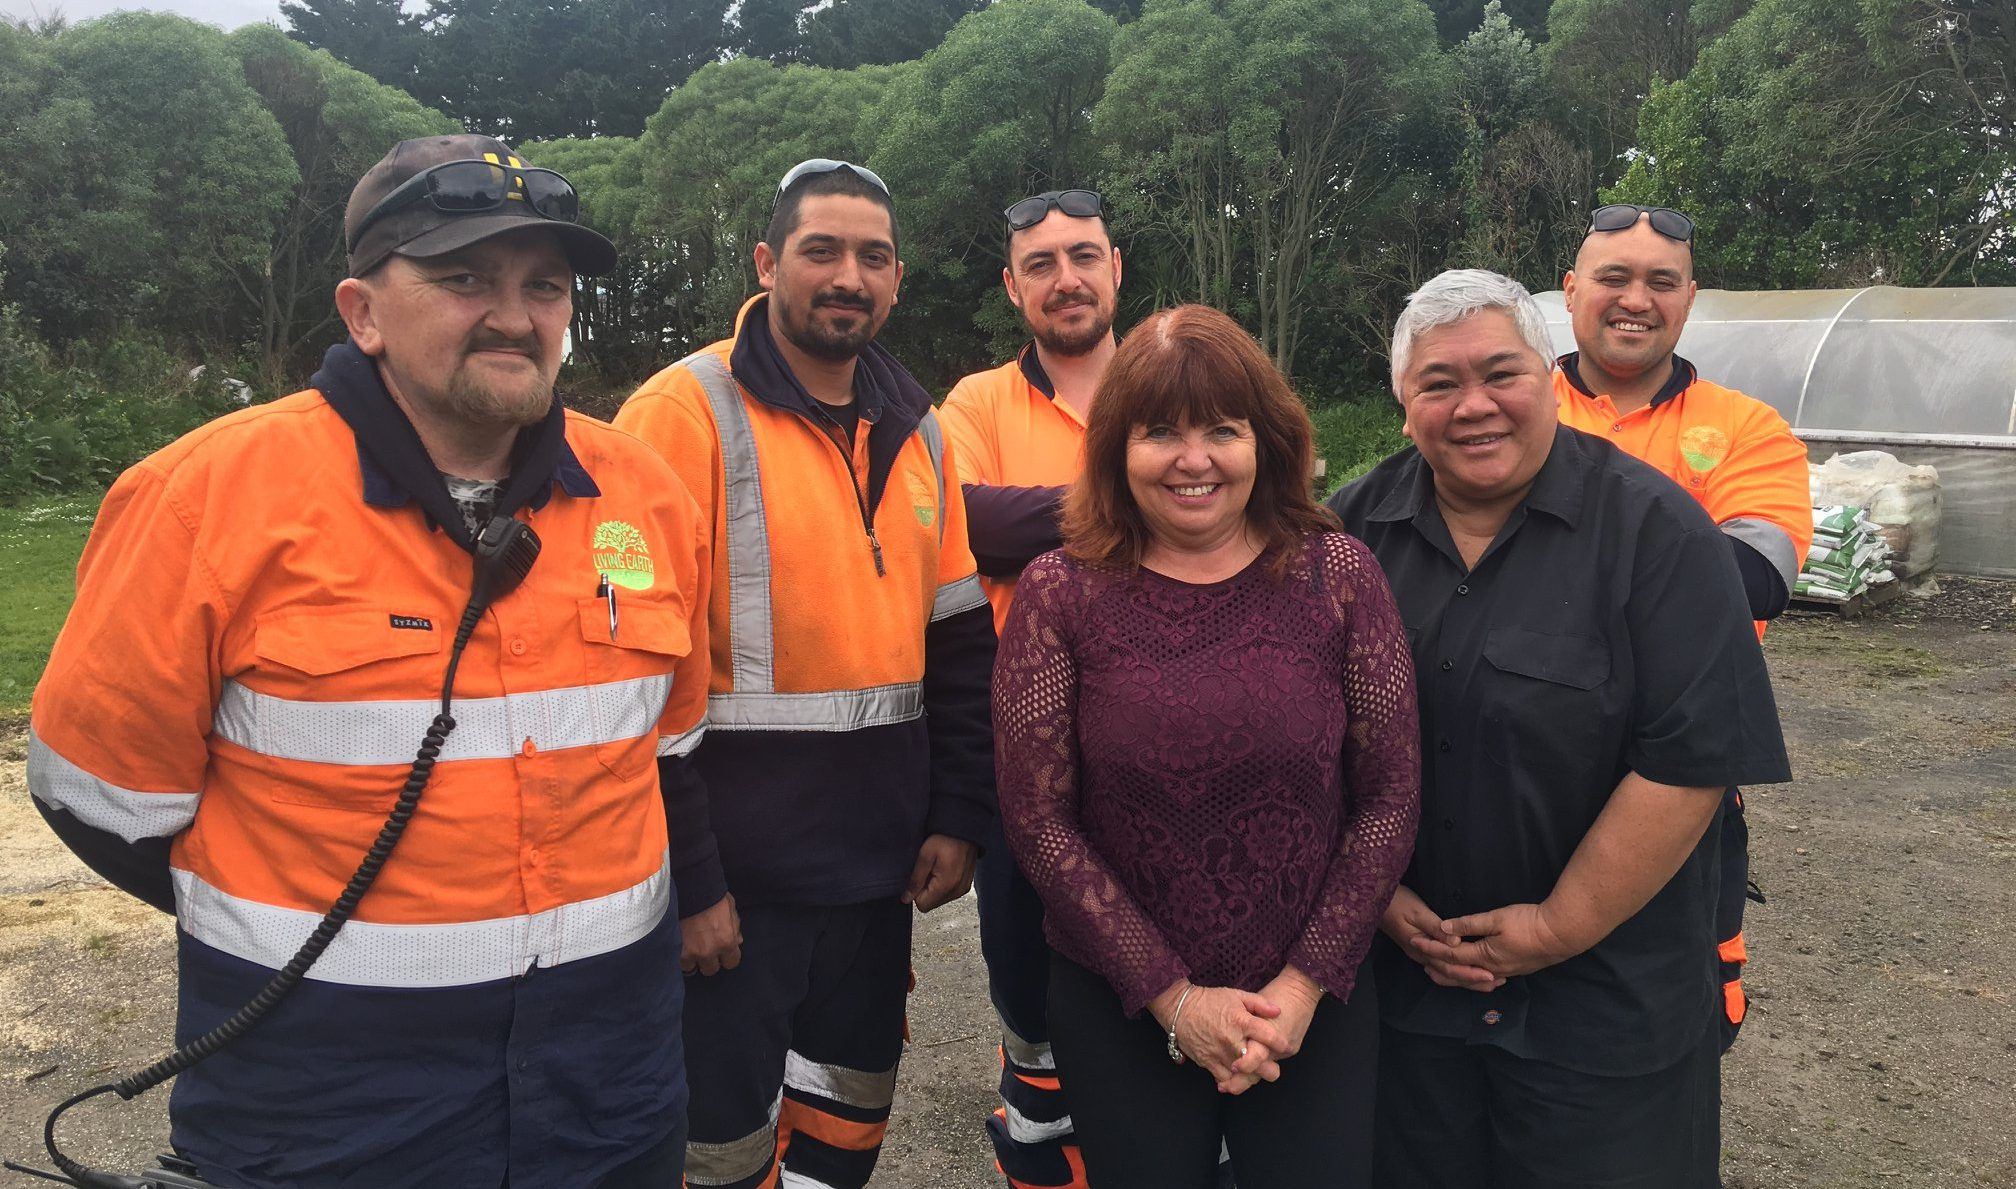 Waste Management Team – Positive Workplace Culture Through Training